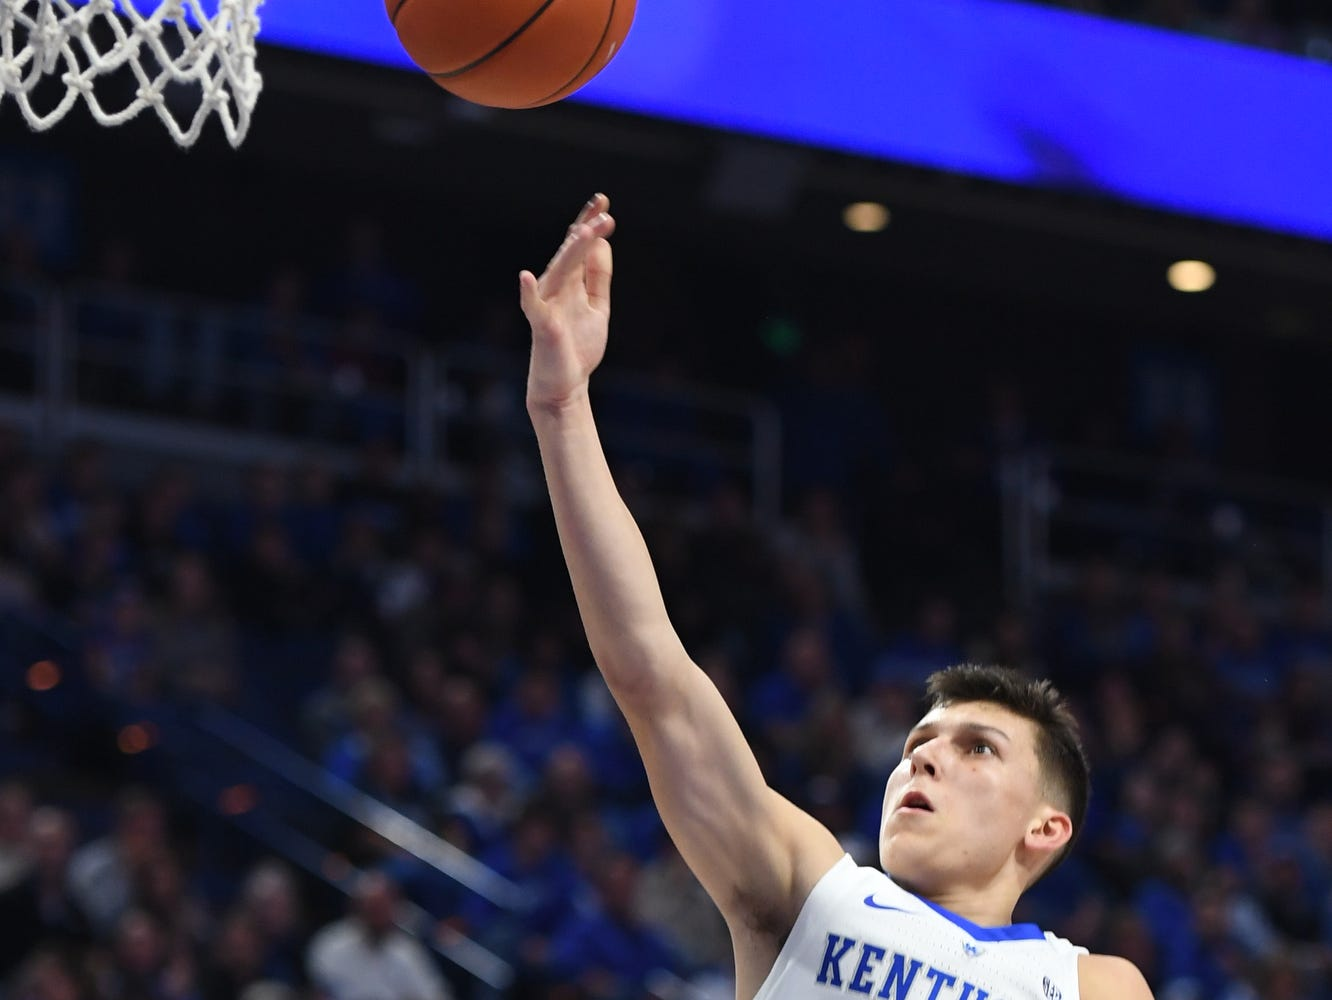 Tyler Herro lays the ball up during the University of Kentucky  basketball game against Indiana University of Pennsylvania at Rupp Arena on Friday, Nov. 2, 2018.